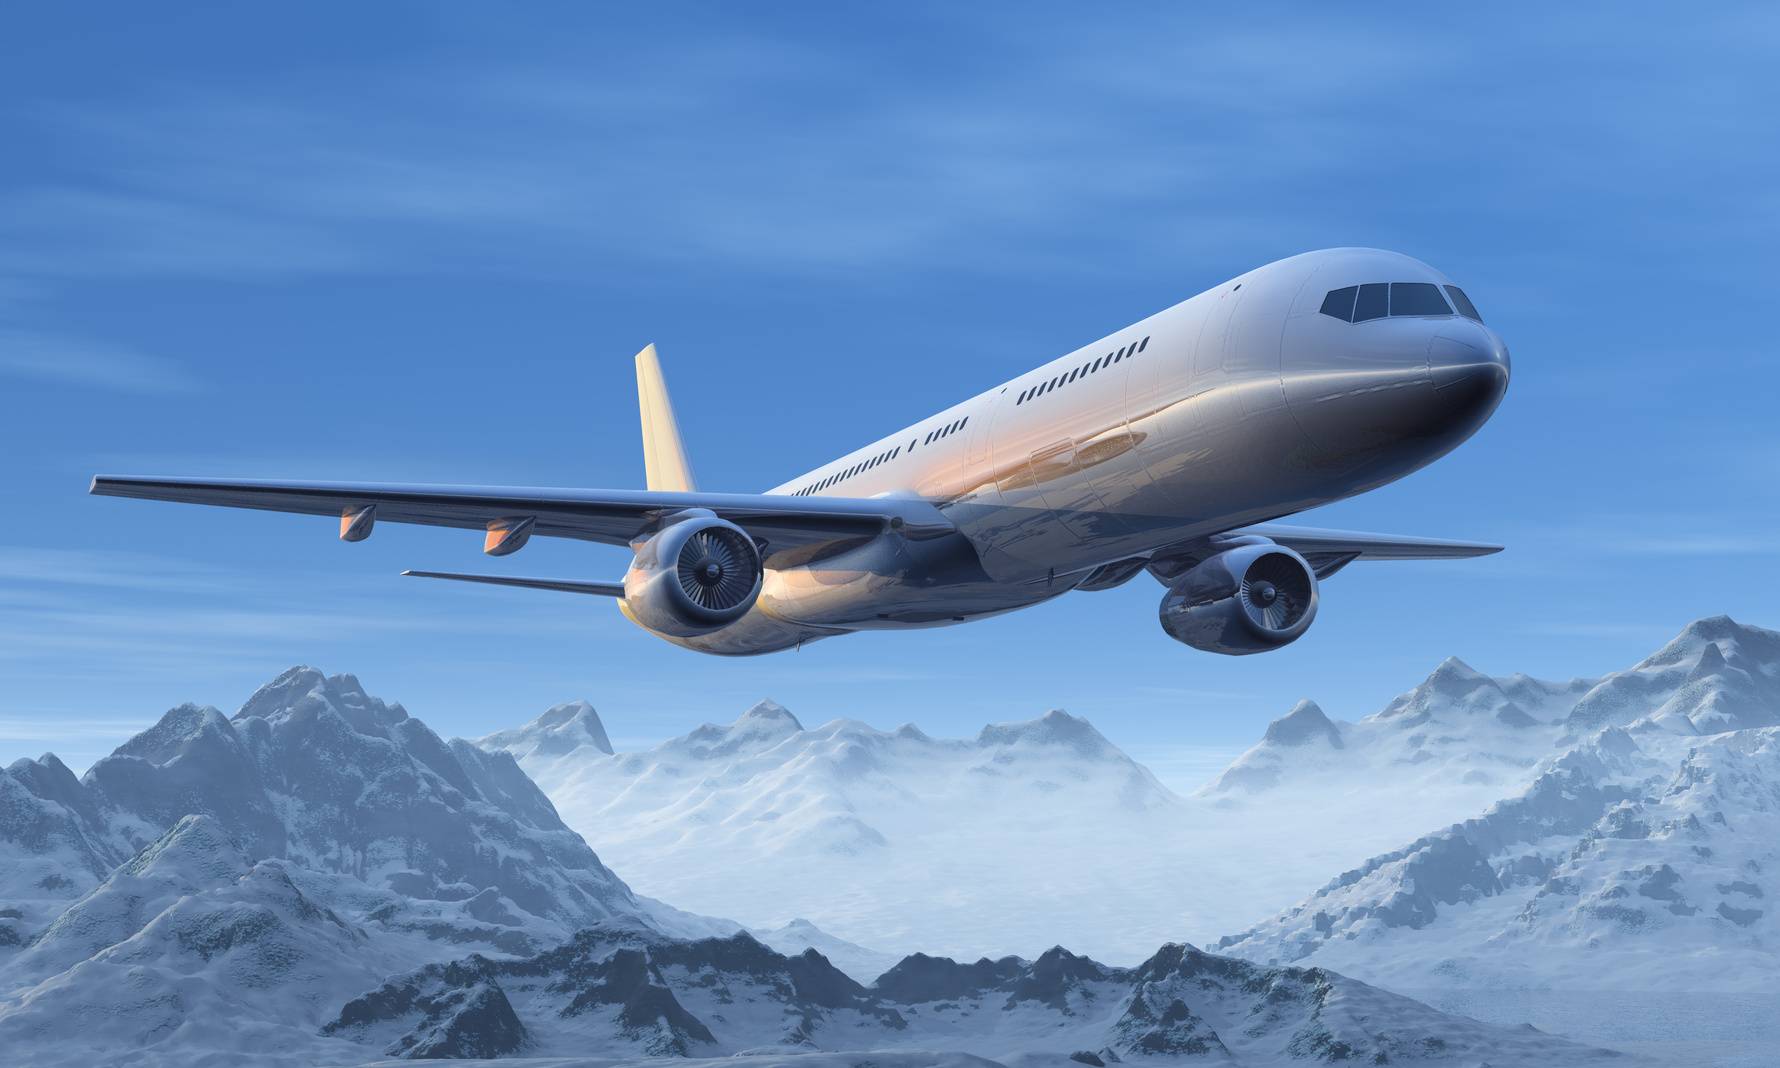 Scenic morning airliner flight over the snowy mountain peaks